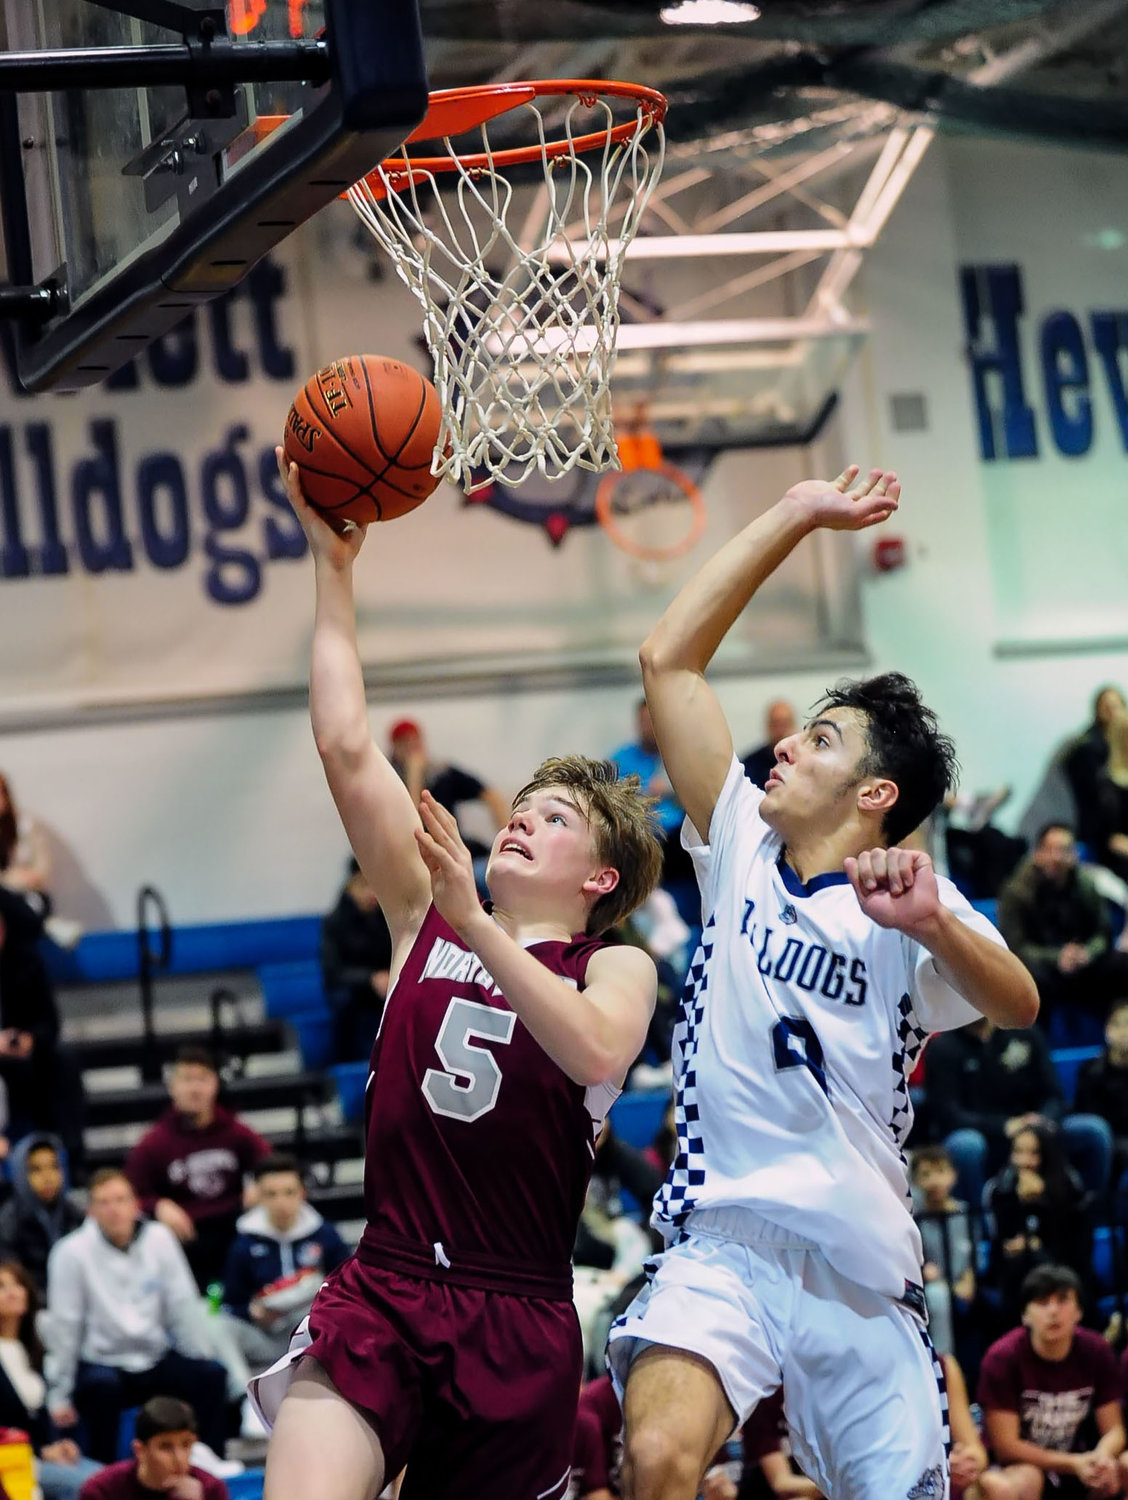 North Shore's Phil LaRosa, left, who scored a team-high 18 points, hit a layup with Hewlett's Sam Vanunu on his heels during the Vikings' playoff loss Feb. 13.